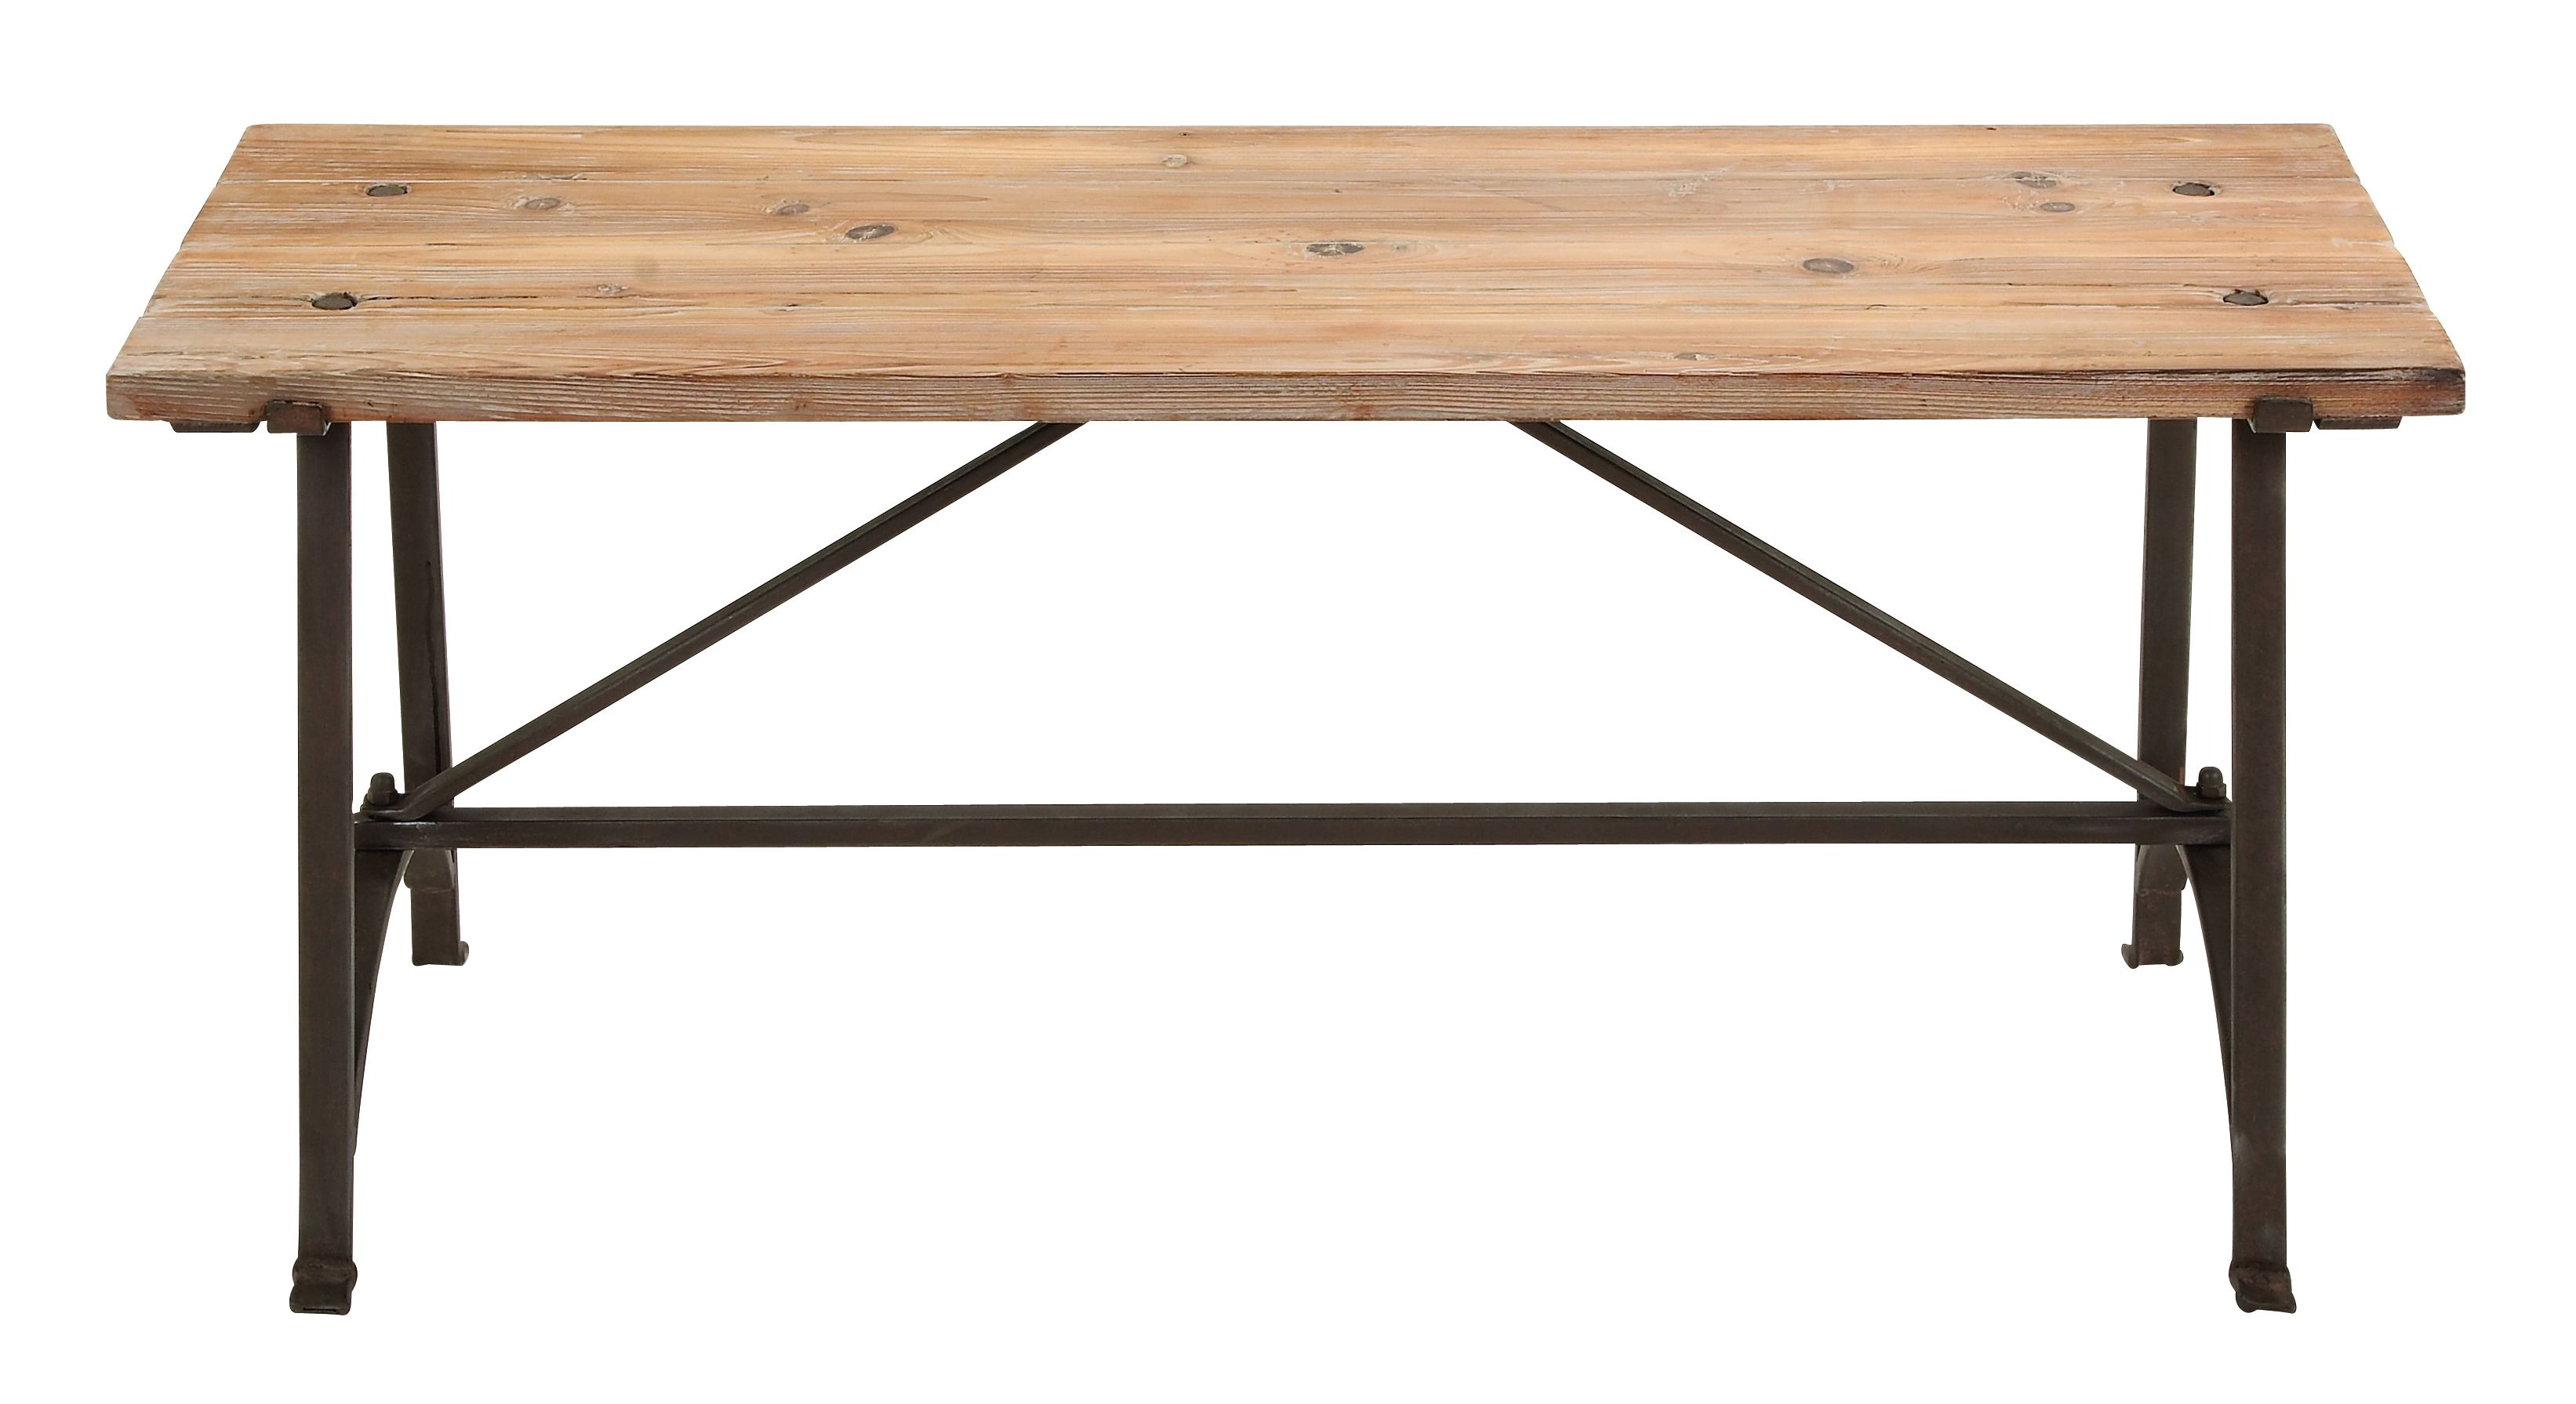 Lovely Rustic Wood Bench With Metal Frame